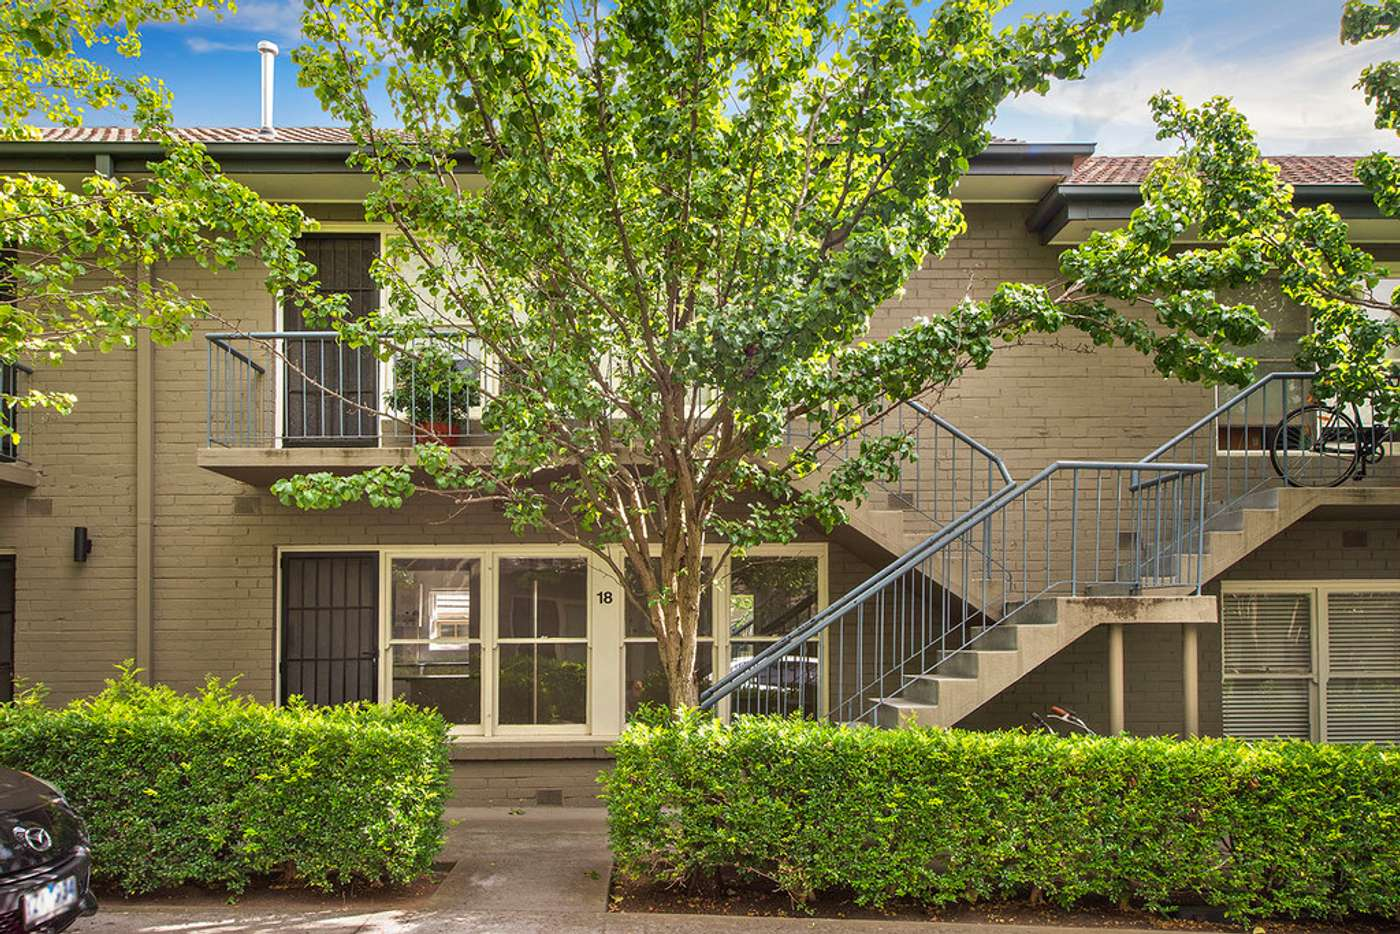 Main view of Homely apartment listing, 18/3 Kooyongkoot Road, Hawthorn VIC 3122